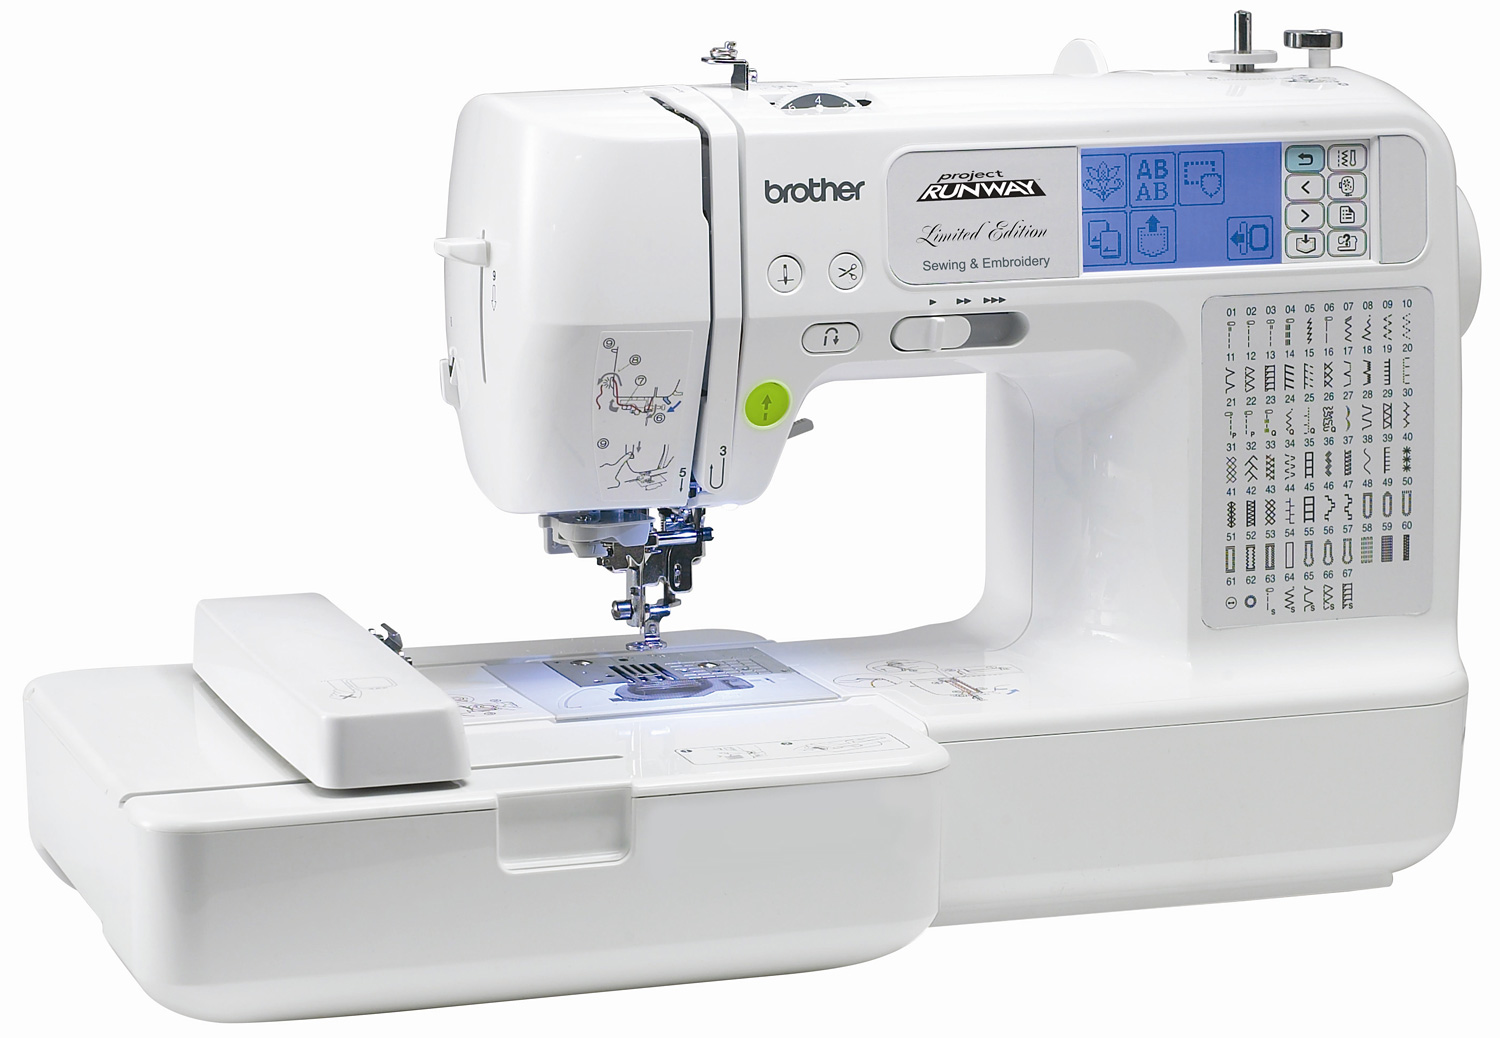 As an authorized retailer, we offer a huge selection of Pfaff sewing machines at our Southern California outlet. Give us a call or visit to learn more!